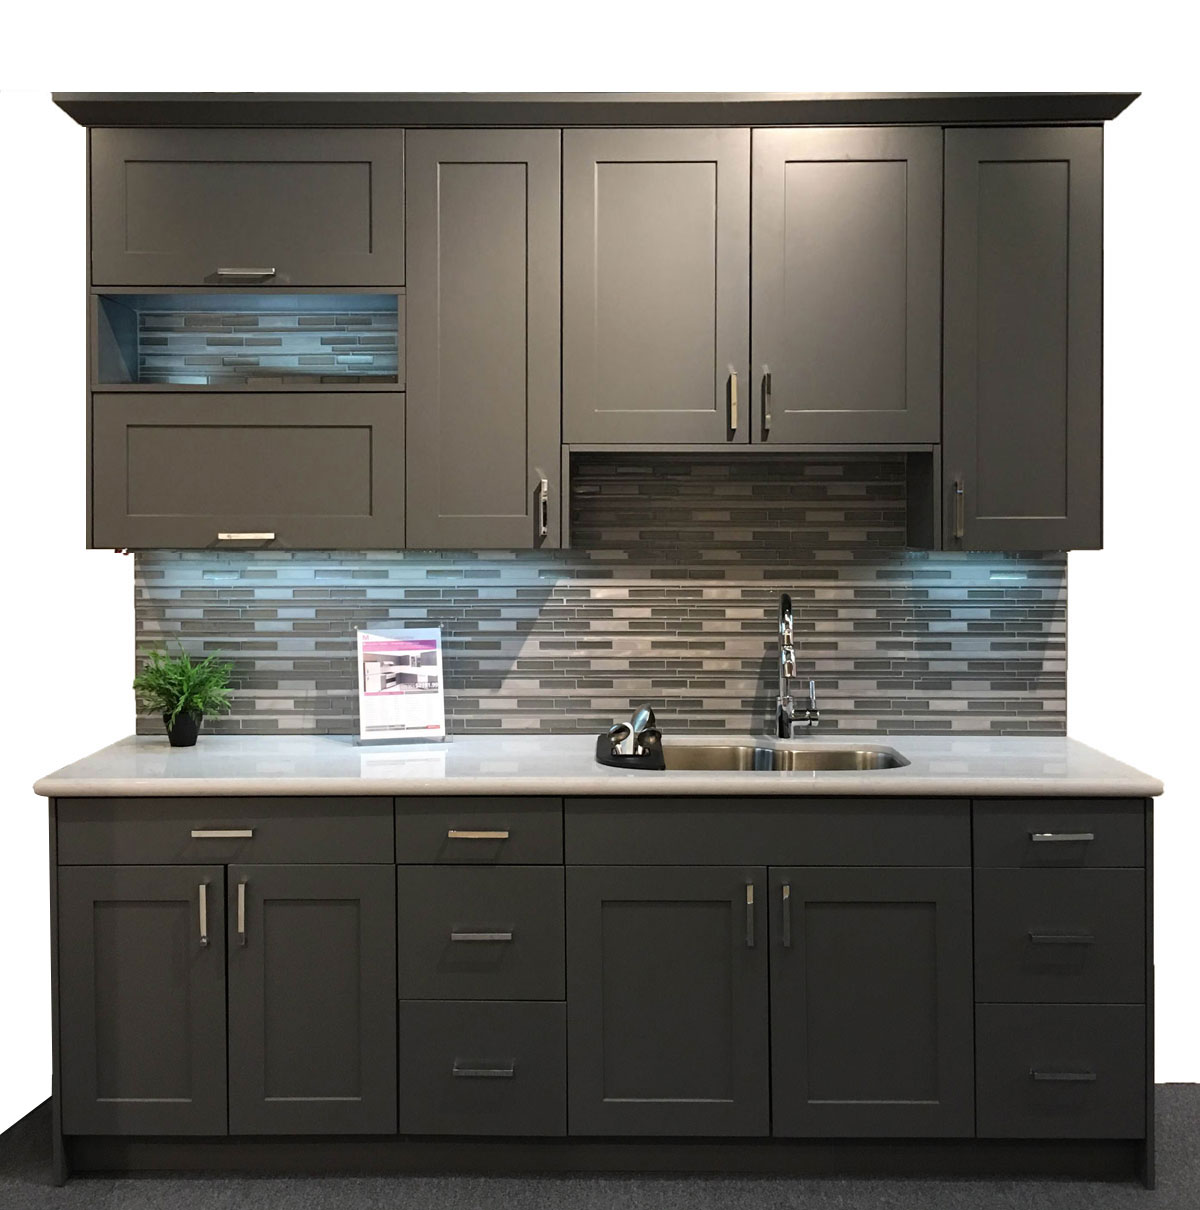 You Assemble Kitchen Cabinets: Revolution American --- Matte Gray Cuppertino